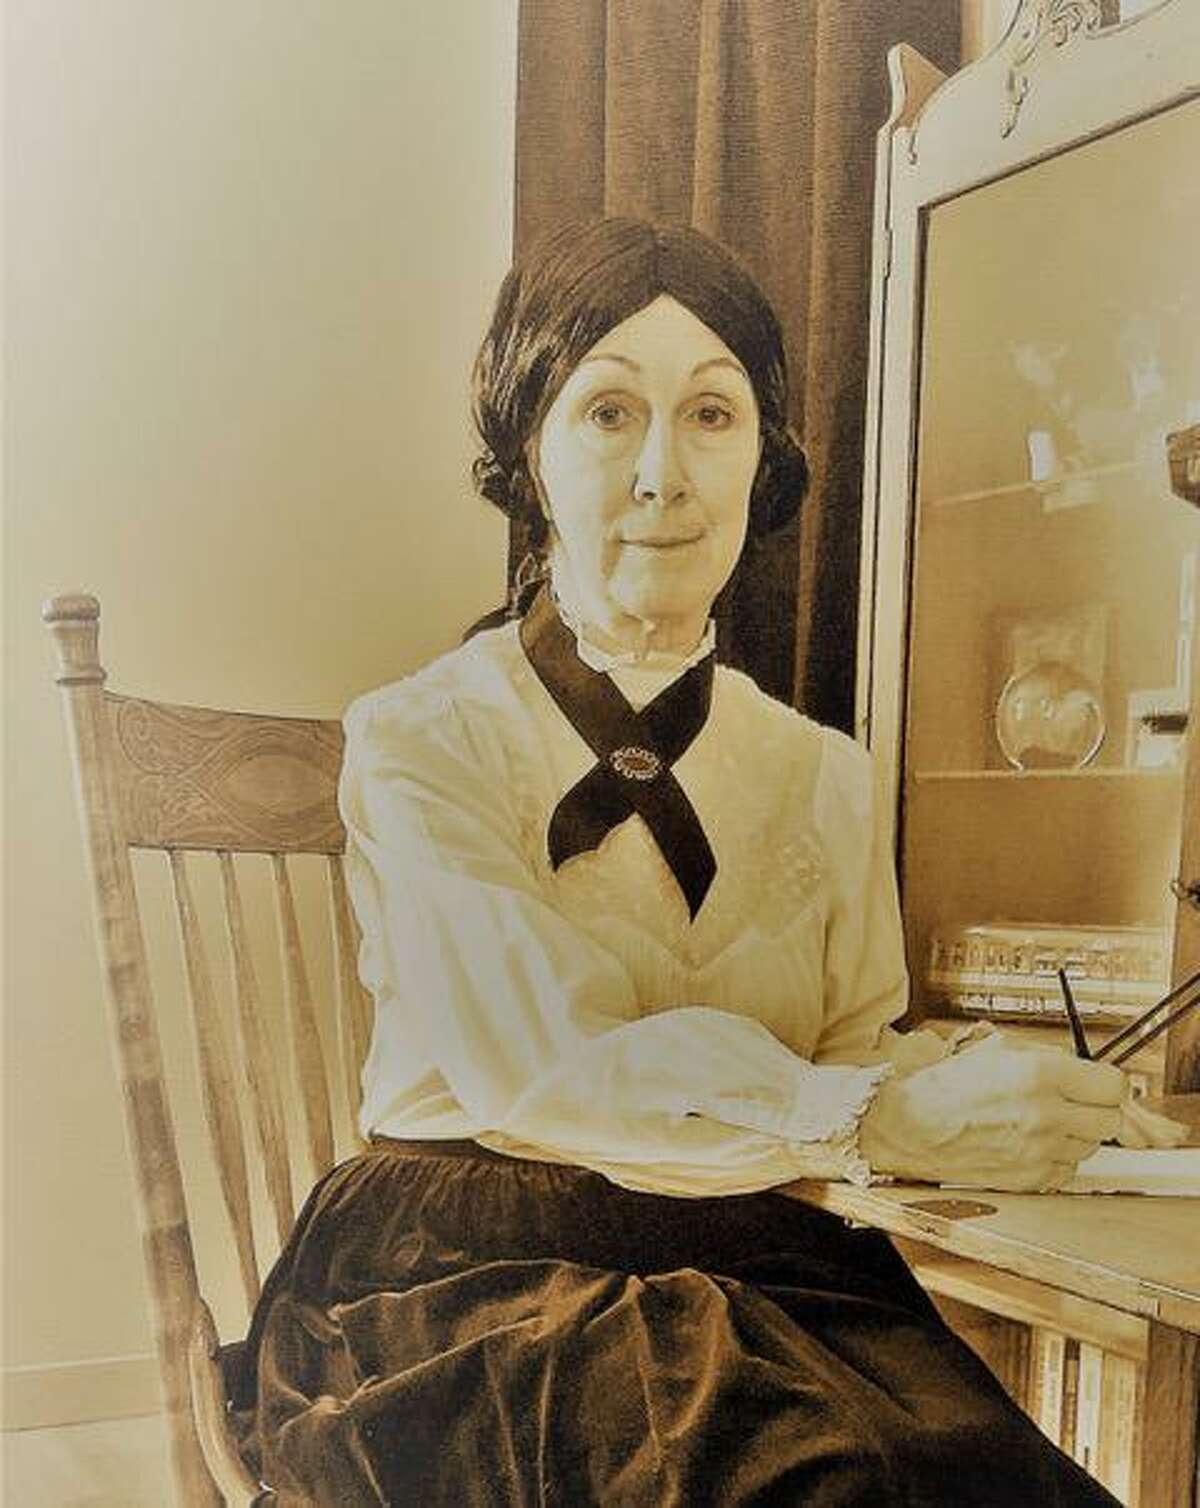 Barb Jennes recreated image of Emily Dickinson.